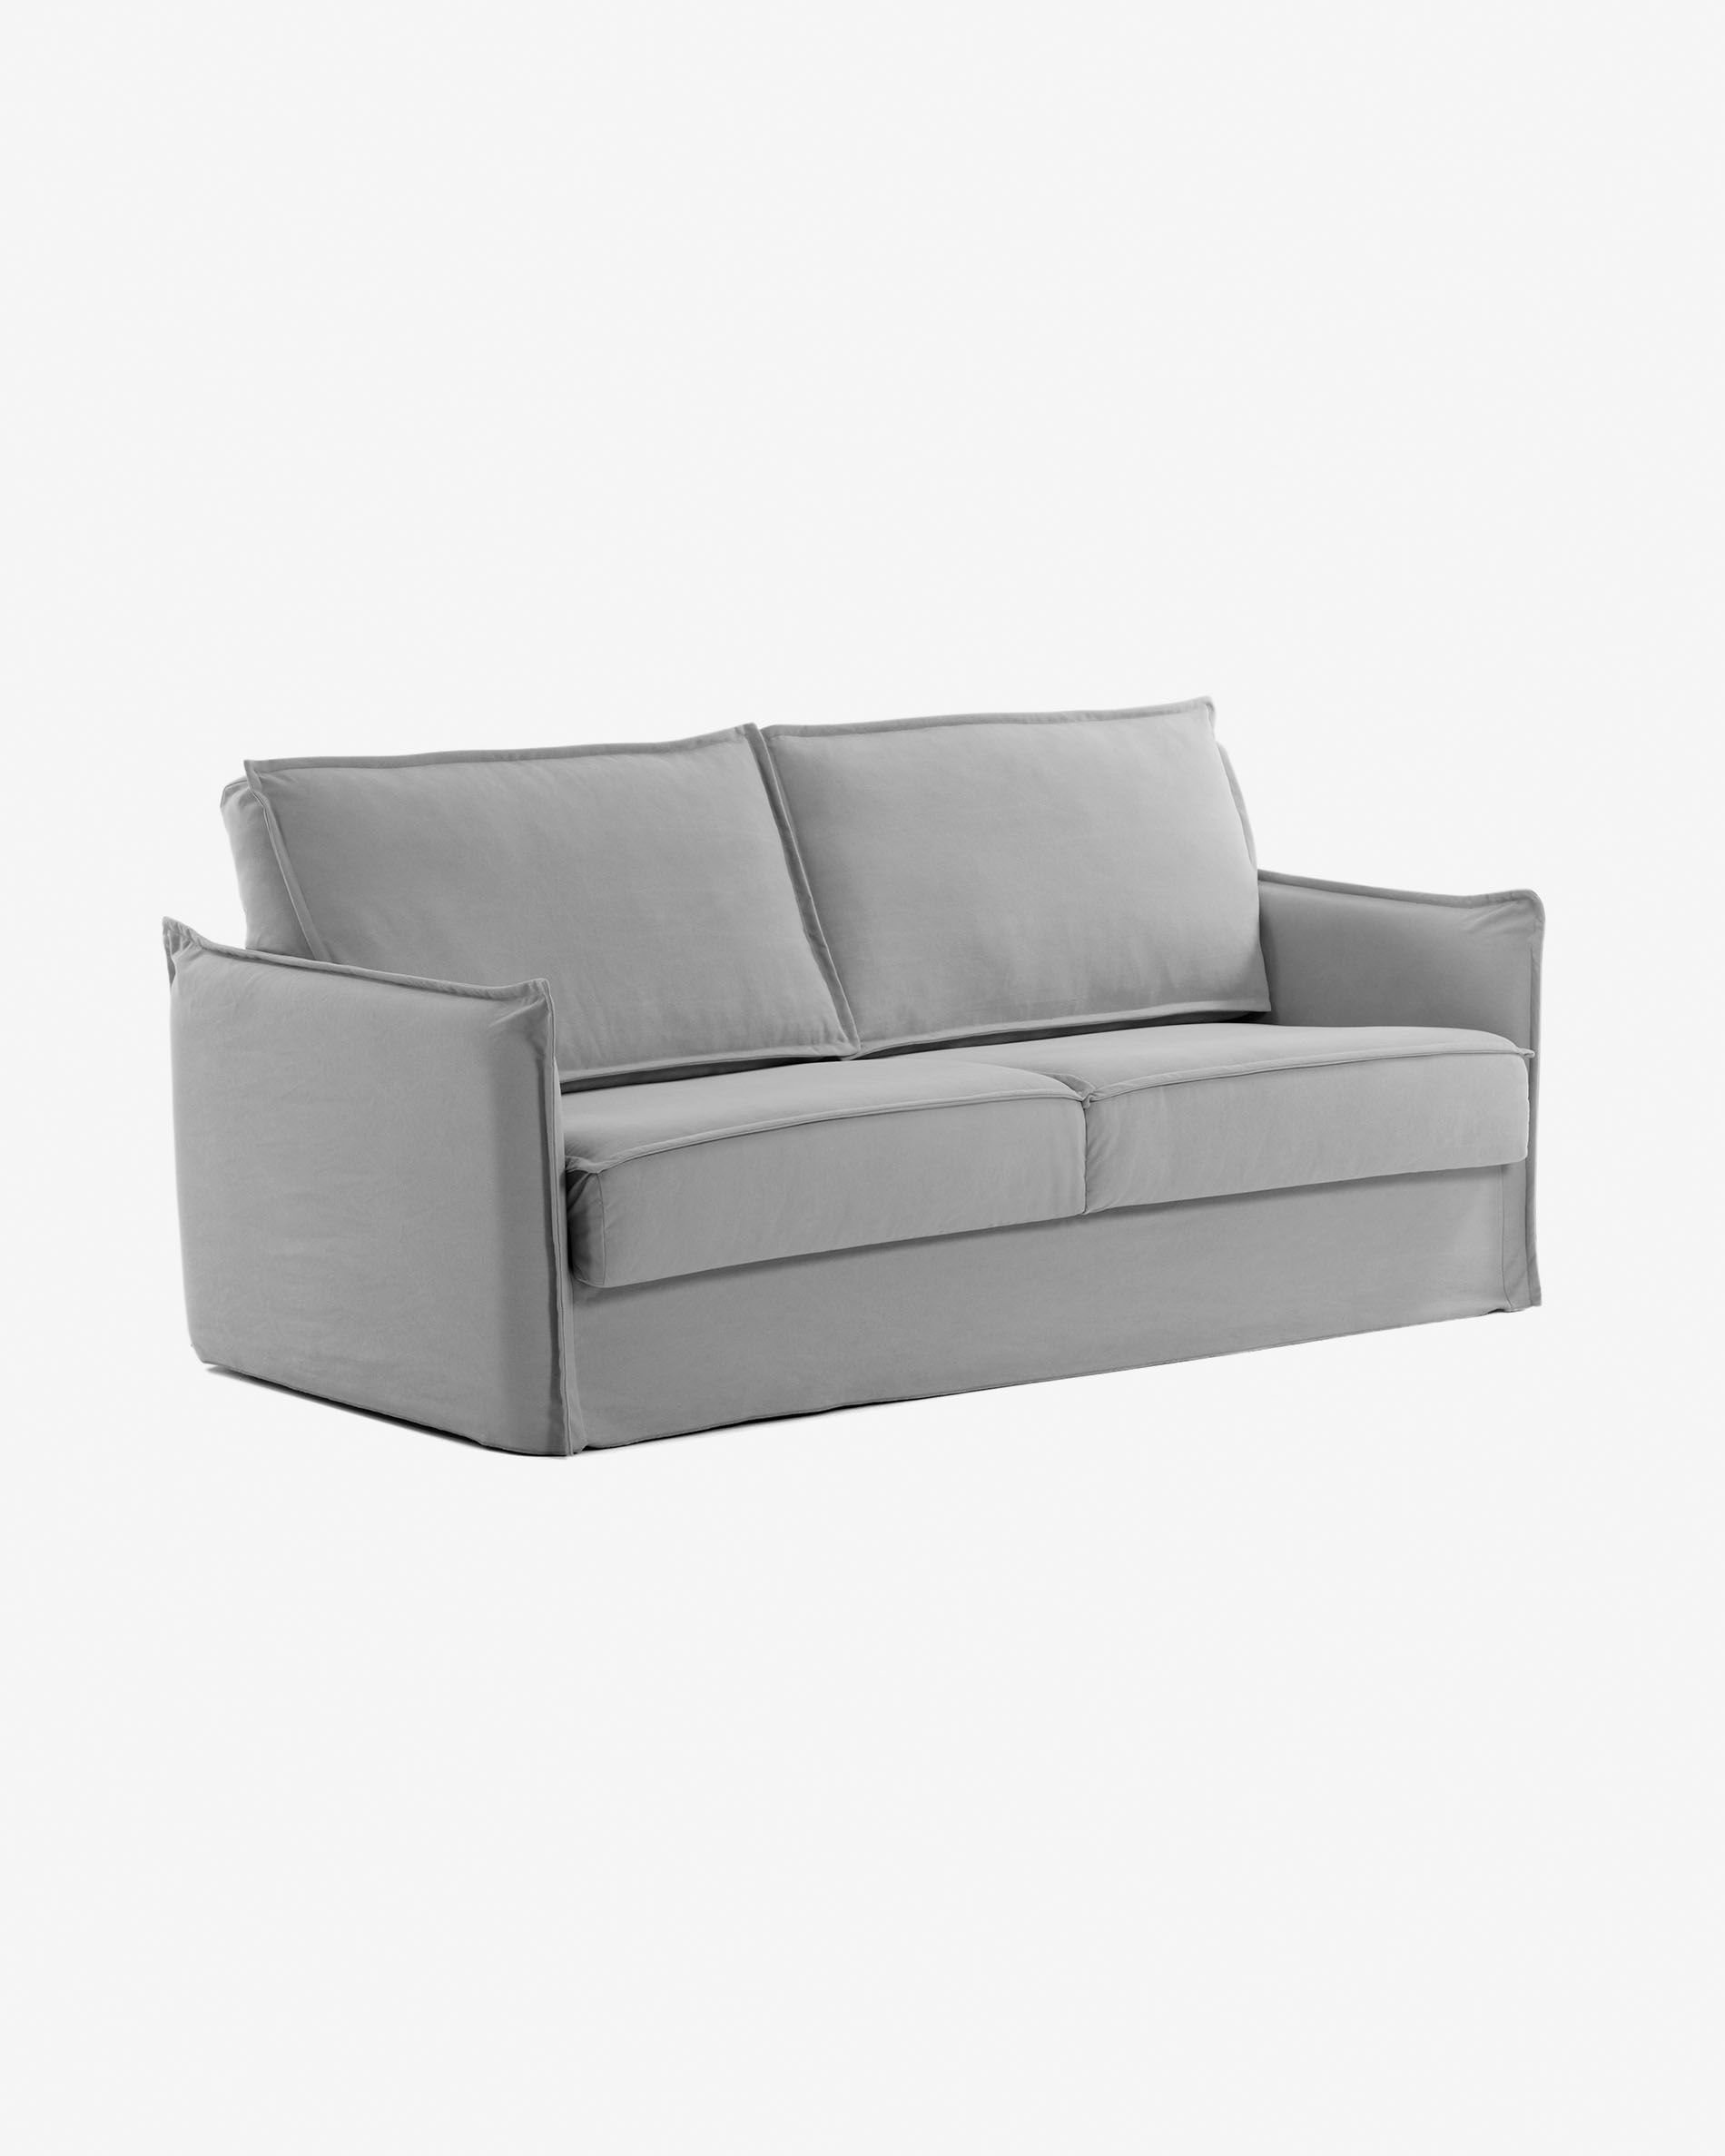 samsa sofa bed 140 cm visco grey